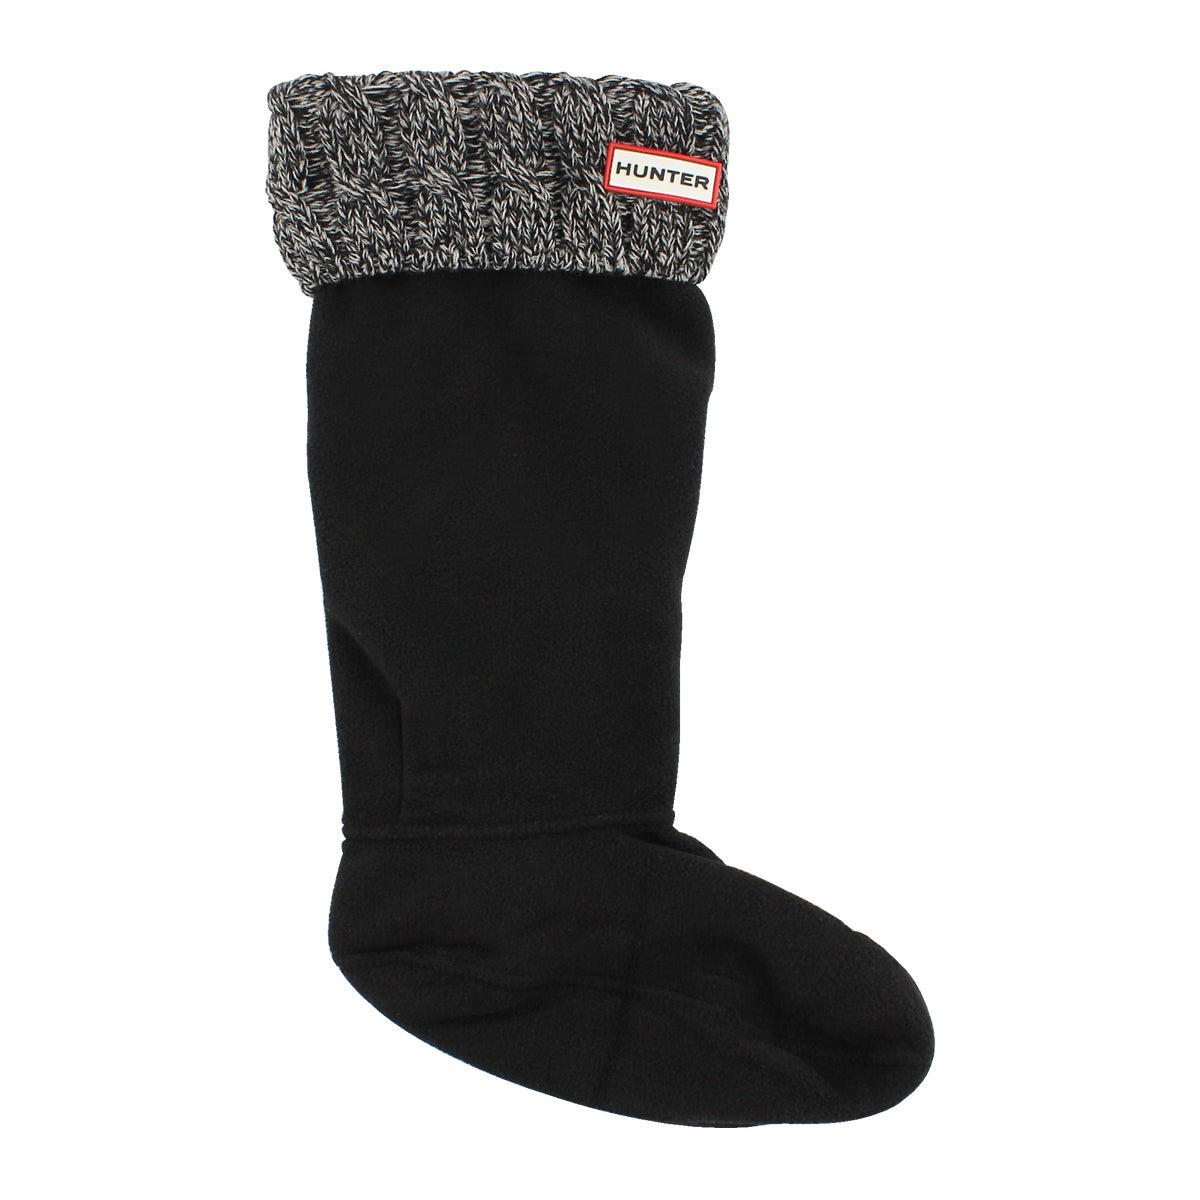 Lds 6 Stitch Cable blk/gry boot sock